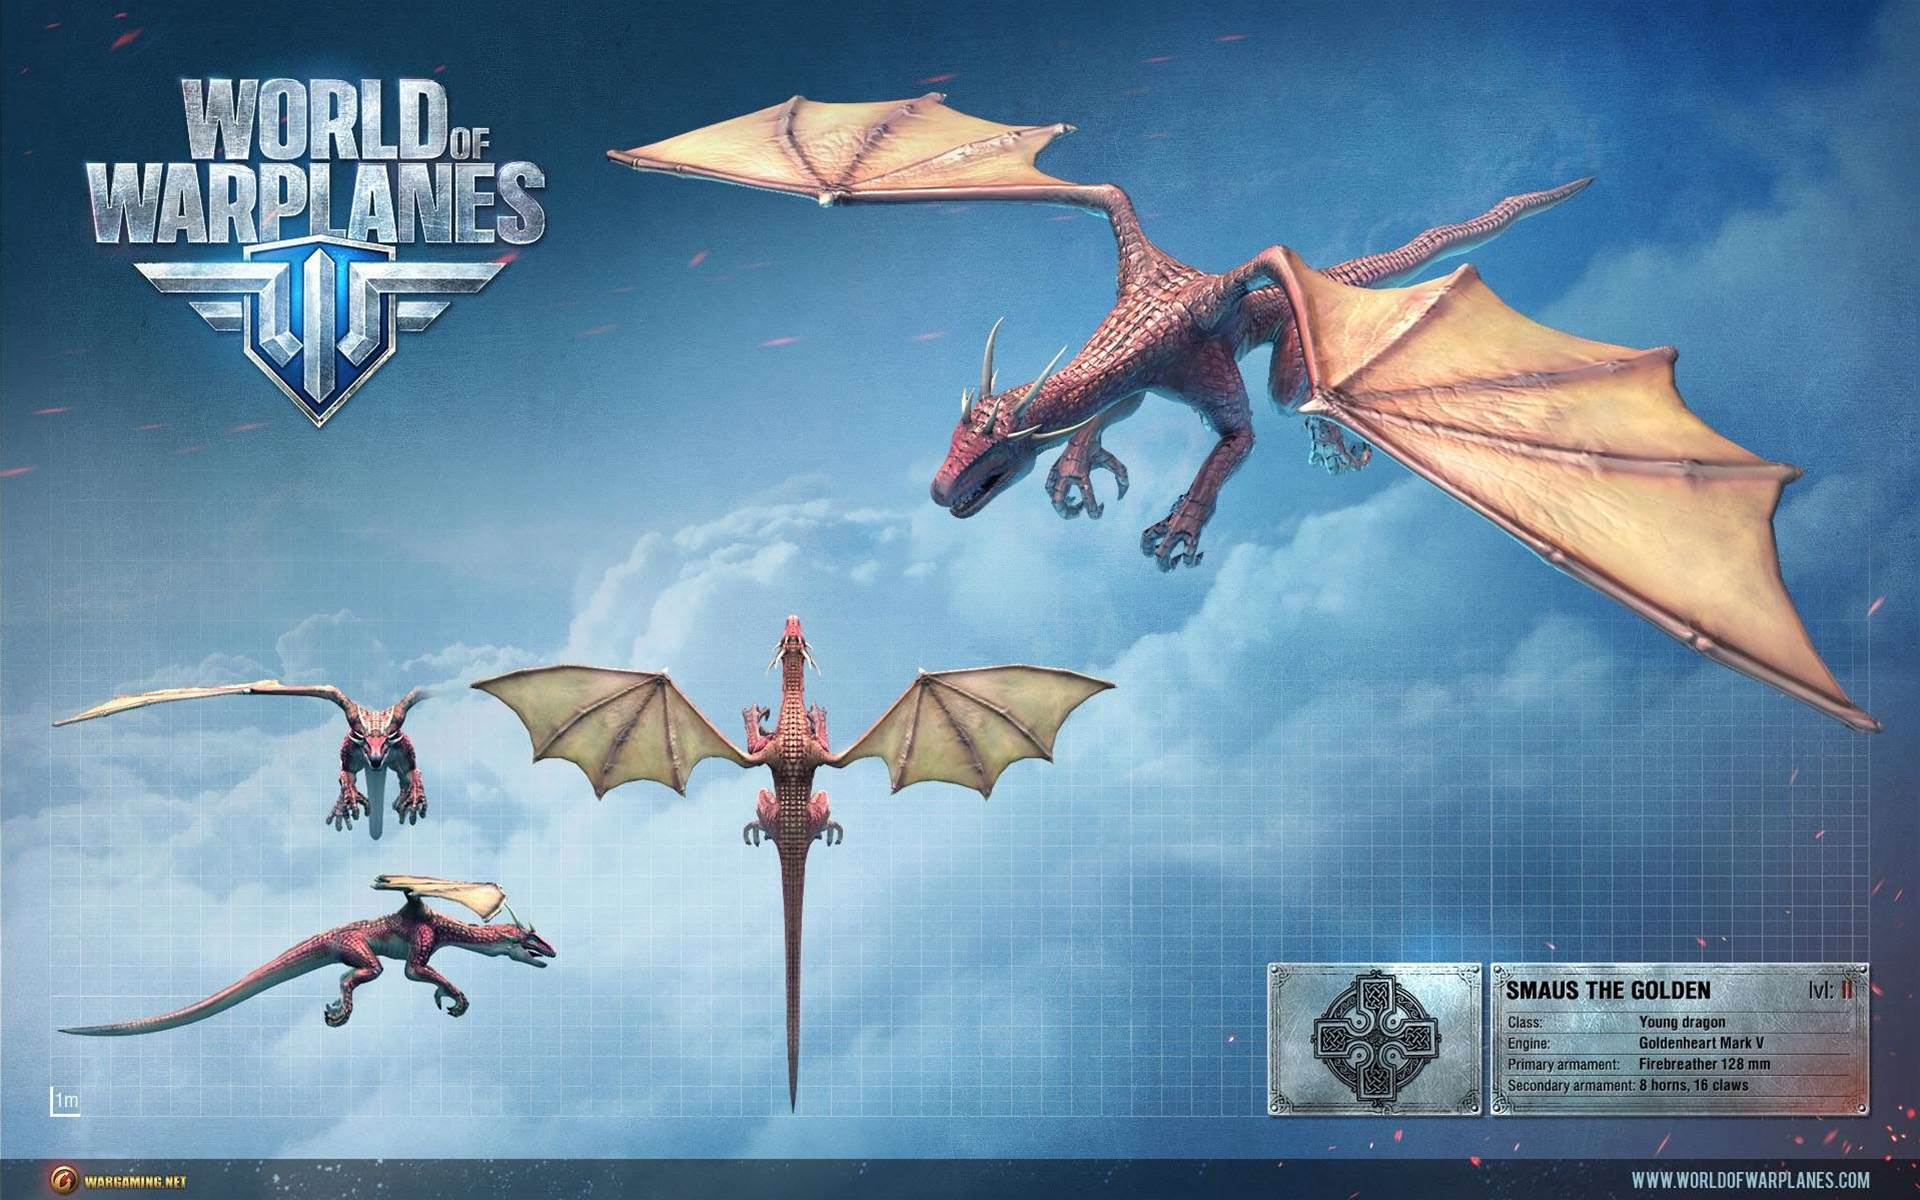 World of Warplanes gets... Dragons?!?